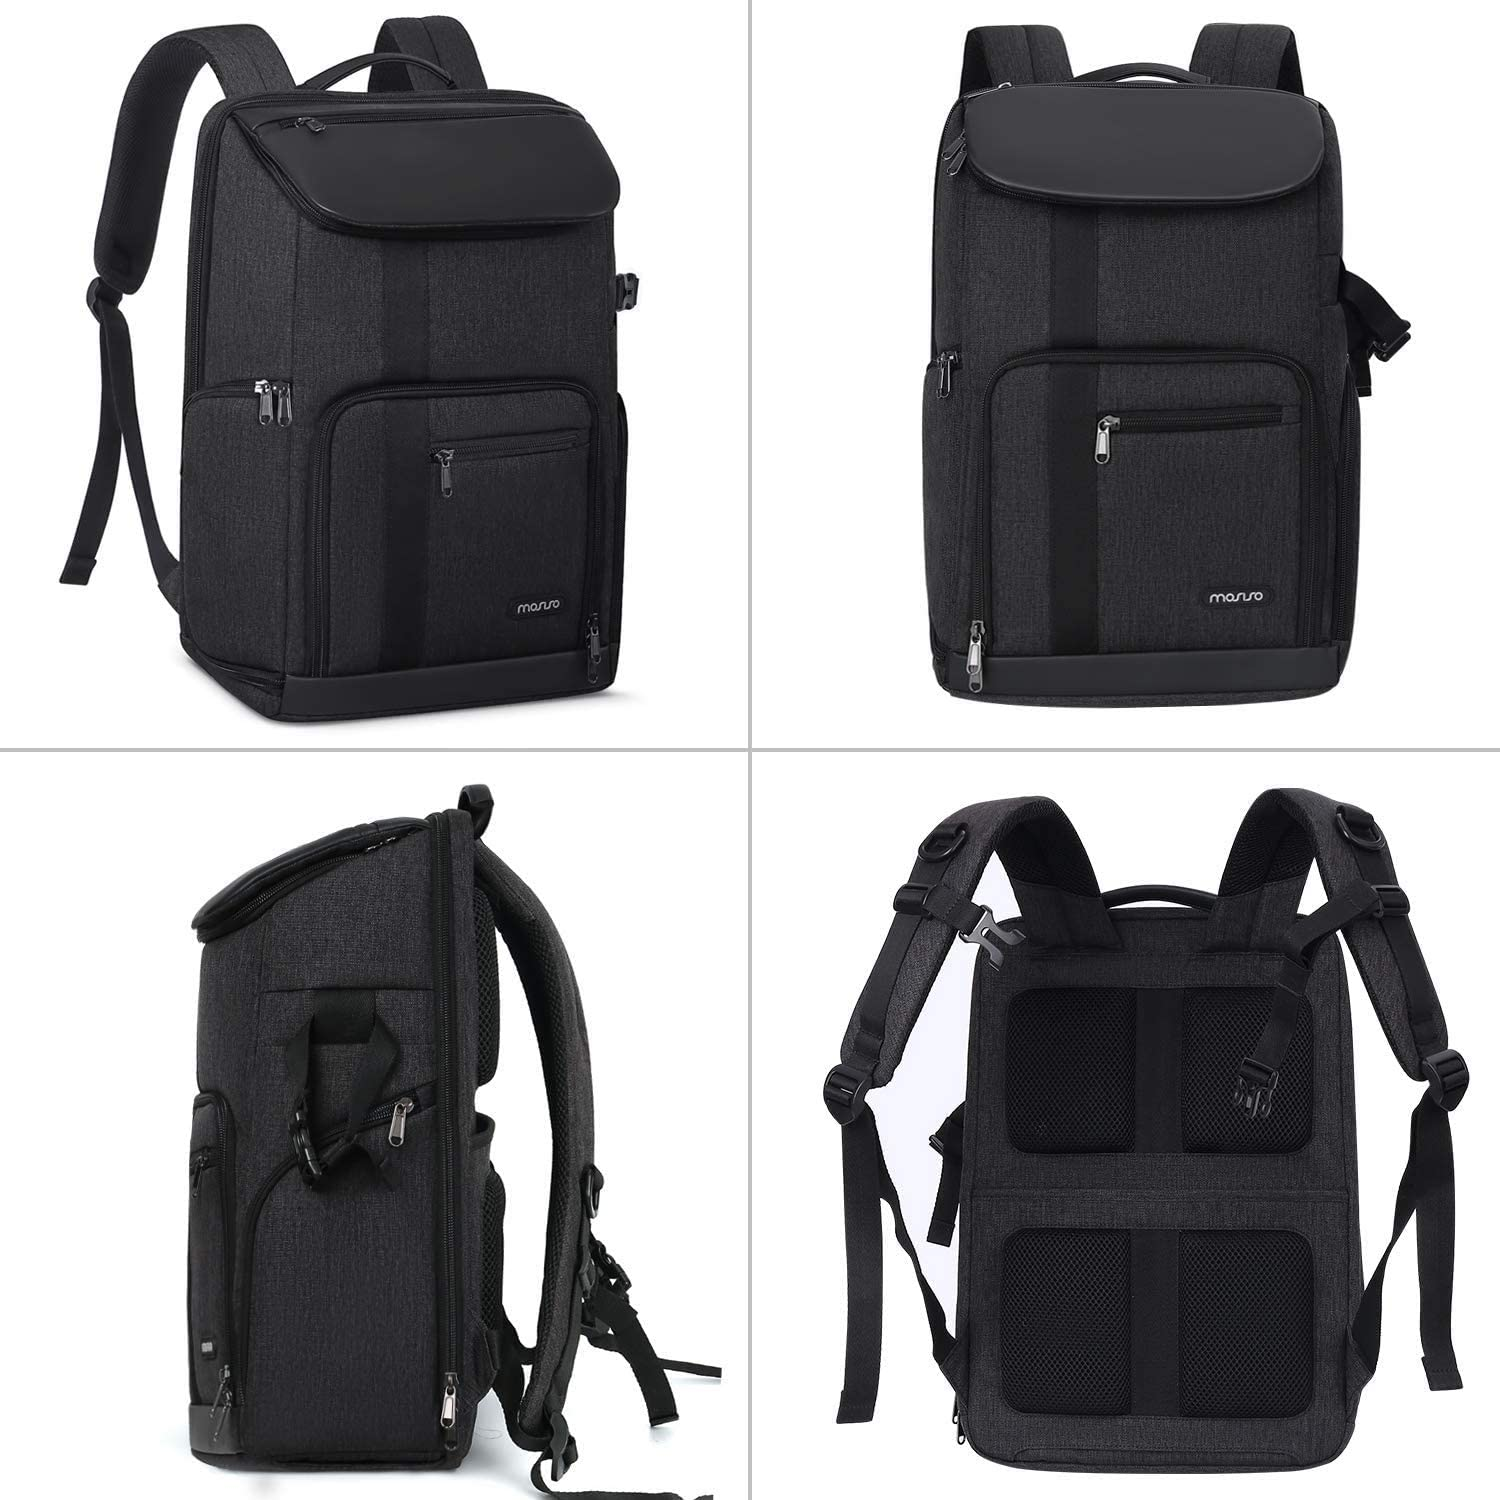 Space Gray MOSISO Camera Backpack 17.3 inch DSLR//SLR//Mirrorless Case Large Men//Women Photography Camera Bag with Laptop Compartment/&Tripod Holder/&Rain Cover Compatible with Canon//Nikon//Fuji//MacBook